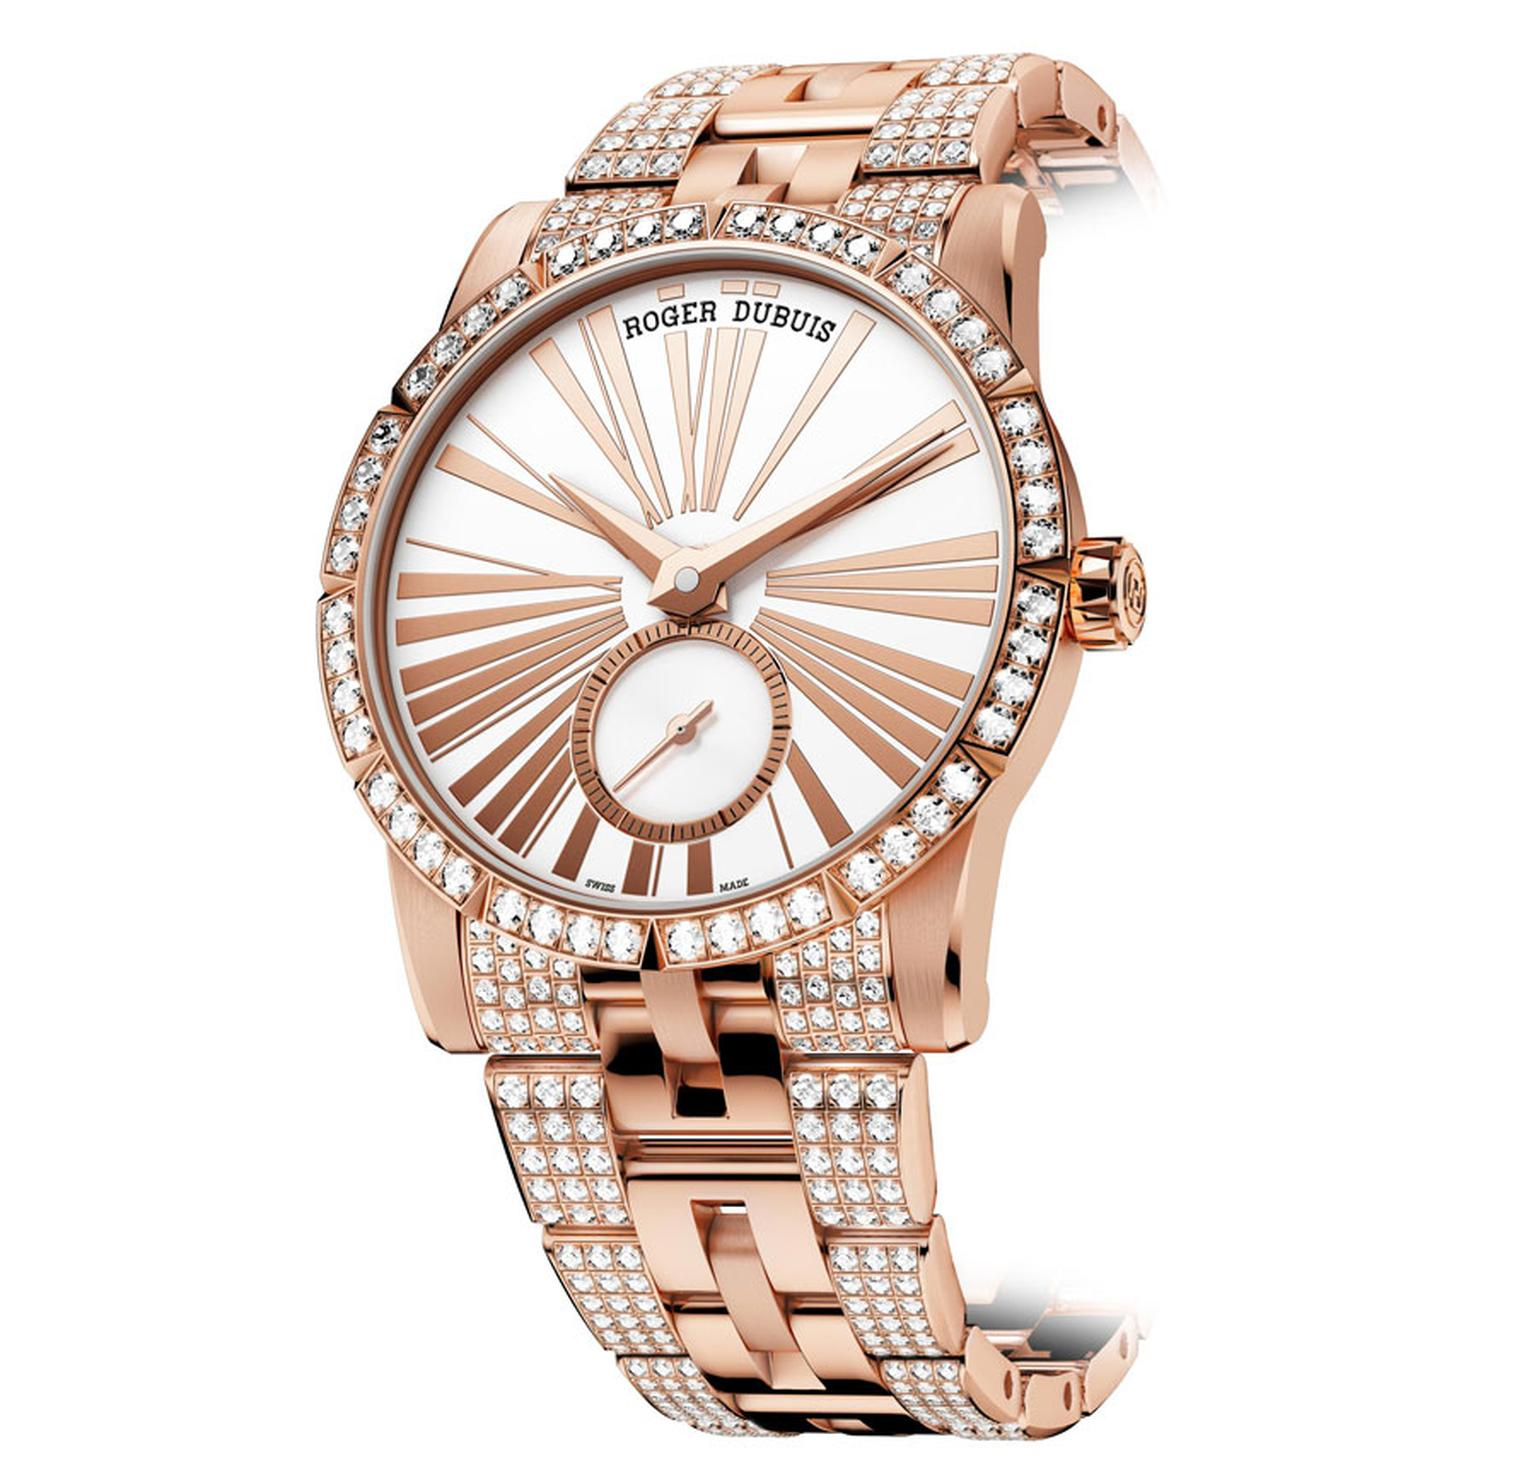 Roger-Dubuis-Excalibur-36-in-Pink-Gold.jpg